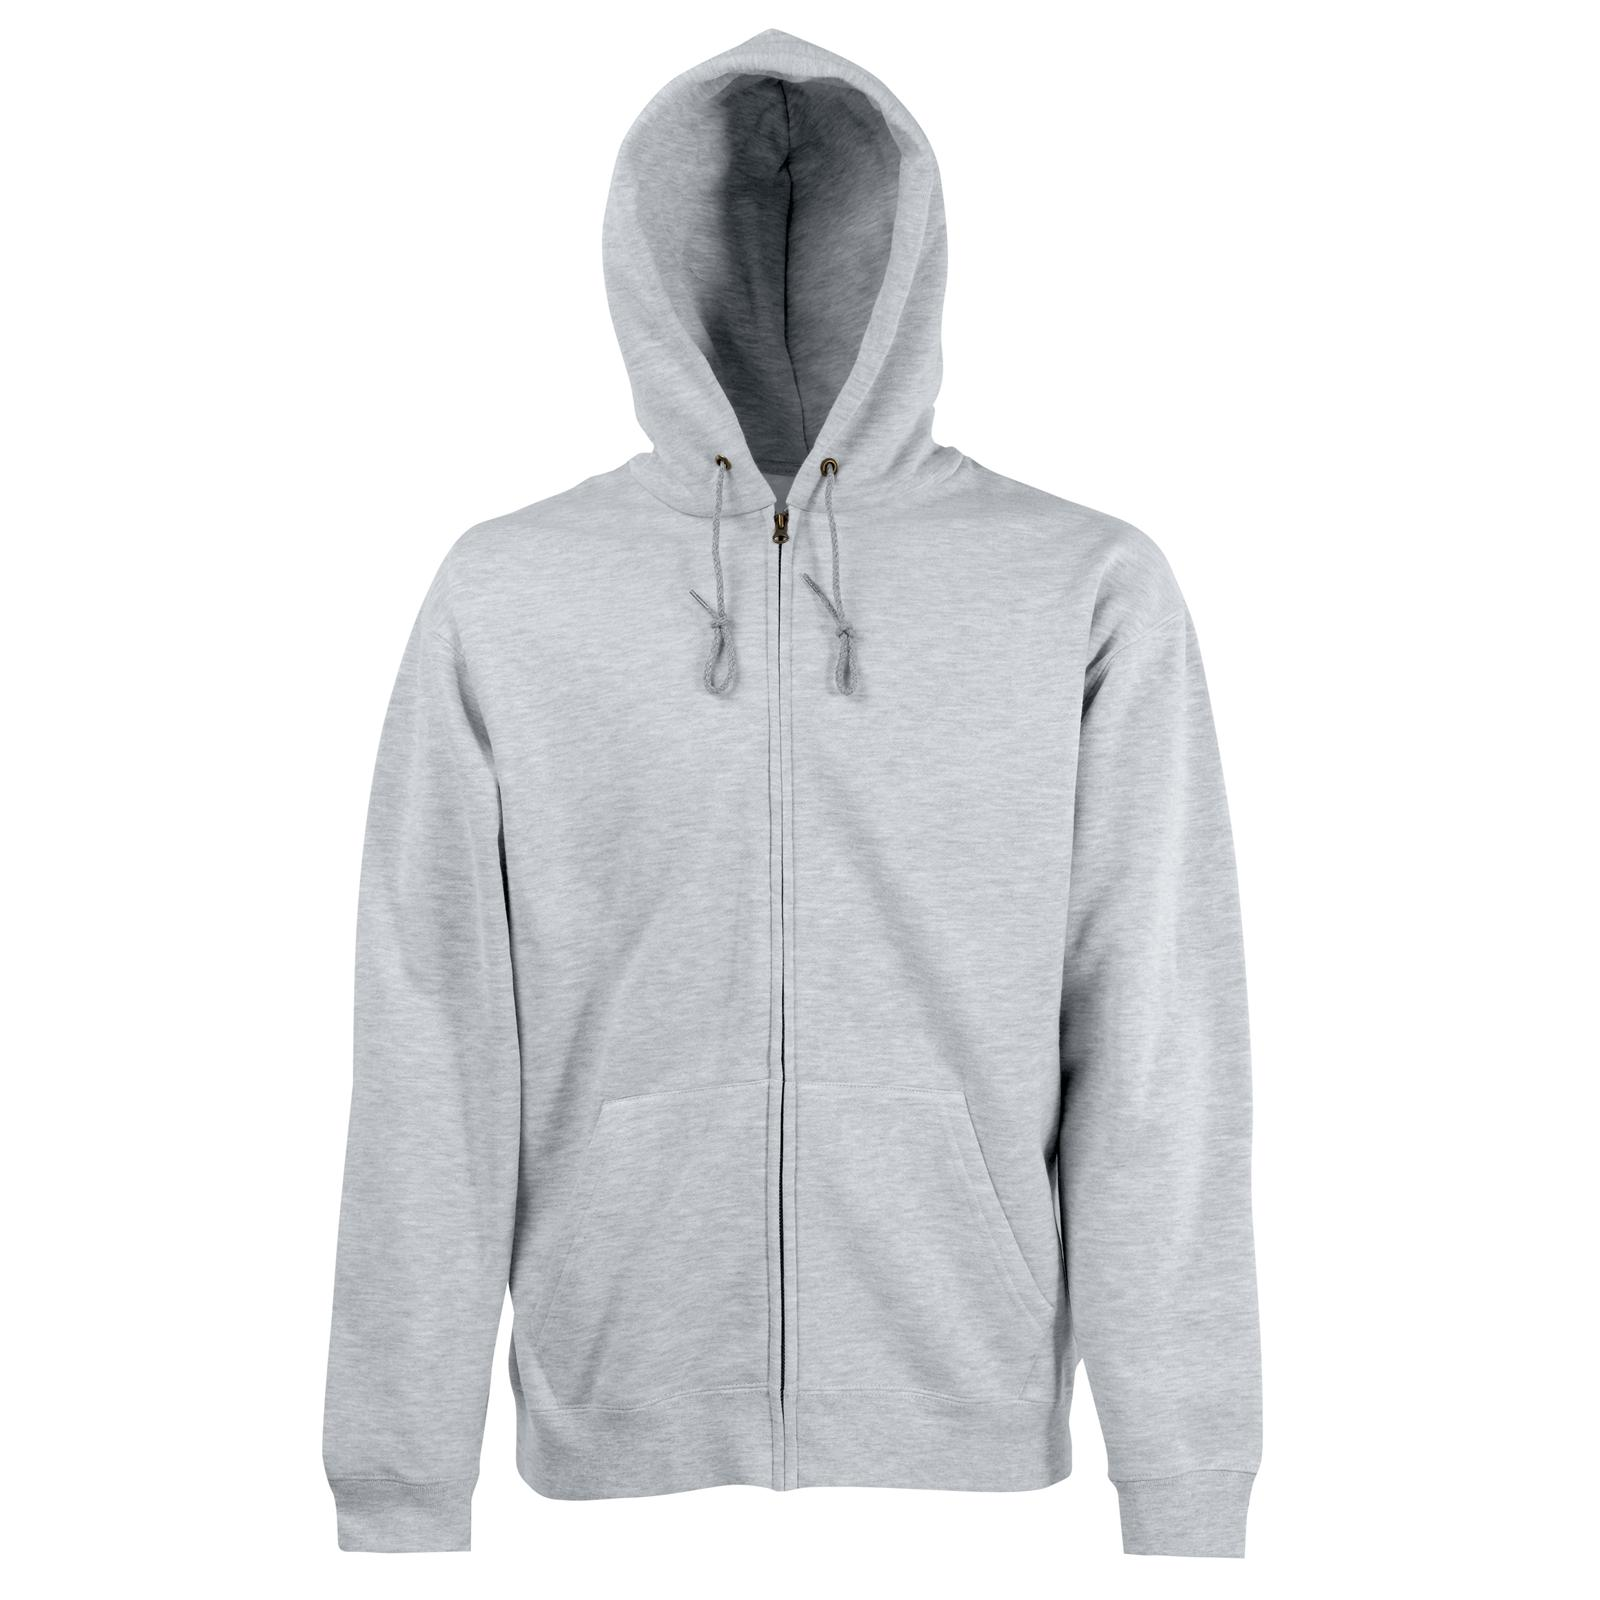 new fruit of the loom mens zip hoodie sweatshirt jacket in 8 colours s xxl ebay. Black Bedroom Furniture Sets. Home Design Ideas